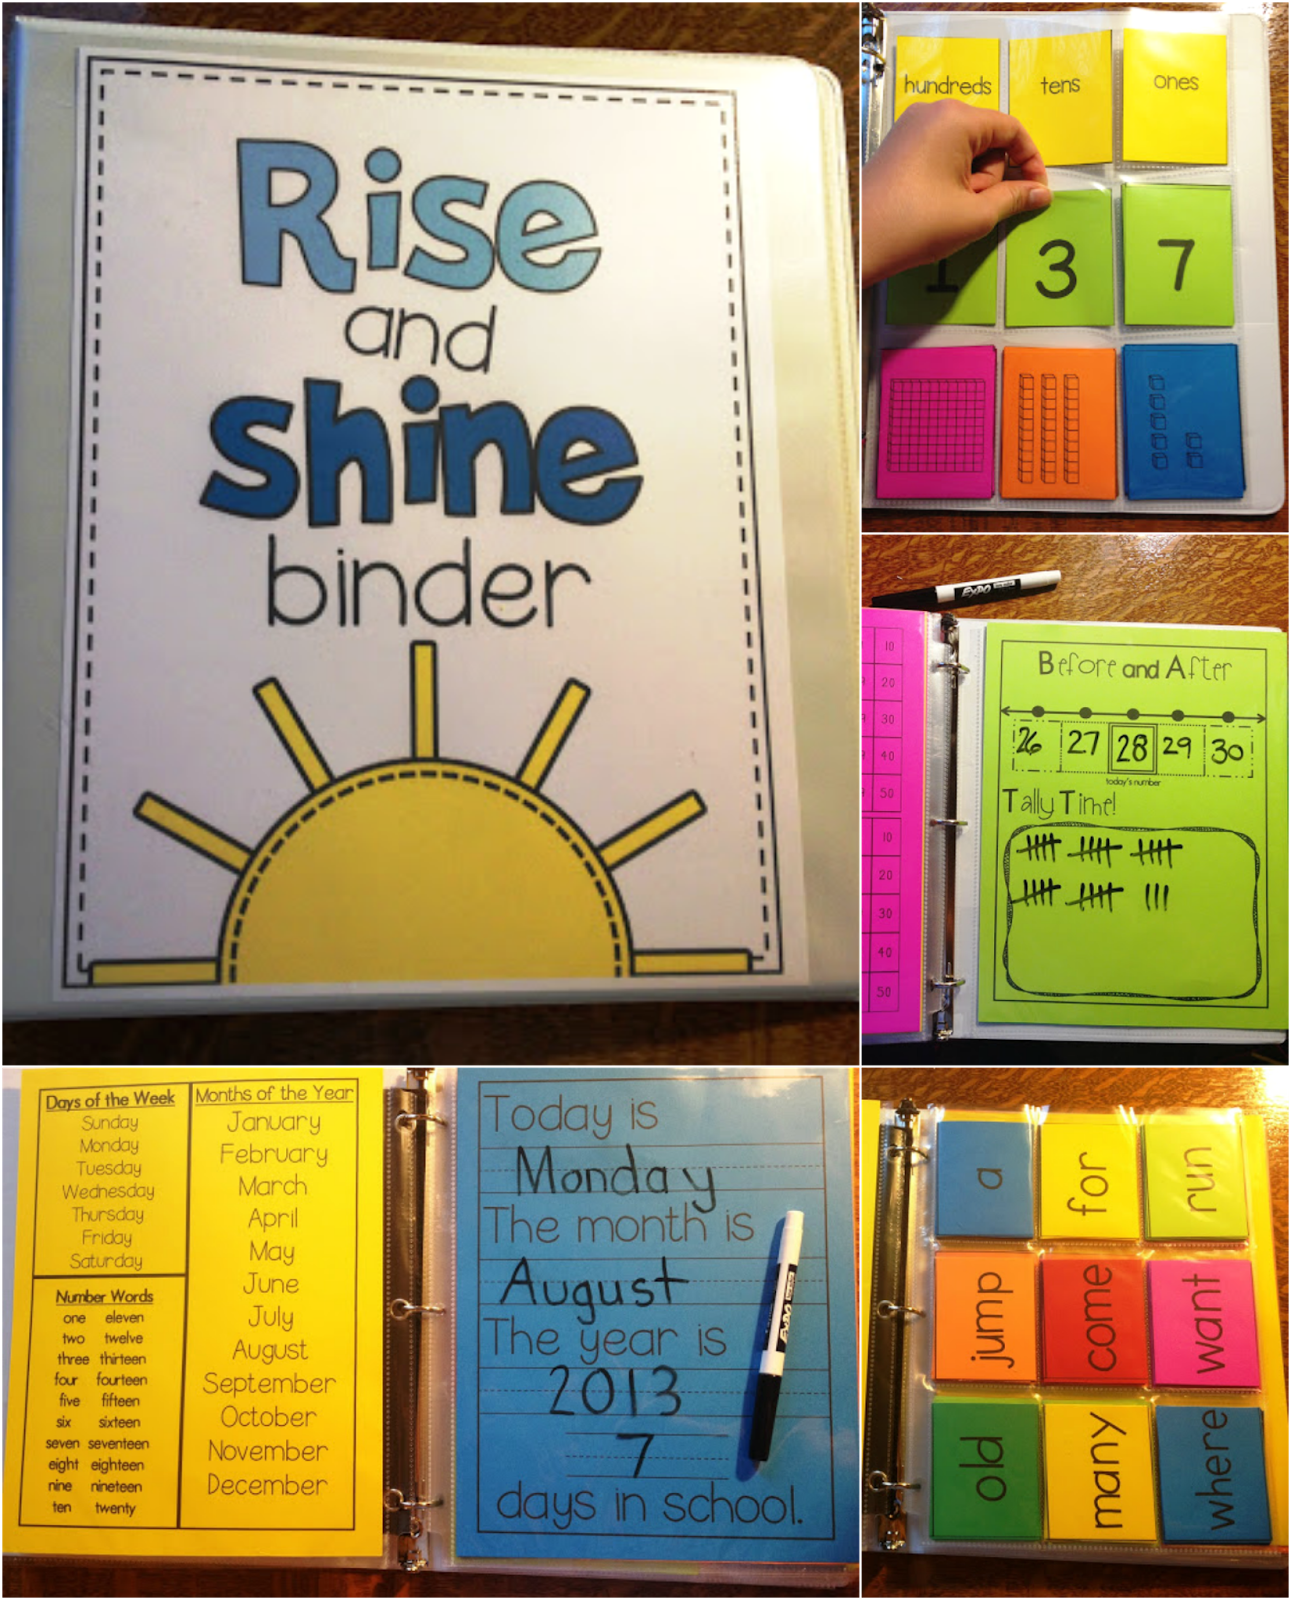 The Rise And Shine Binder